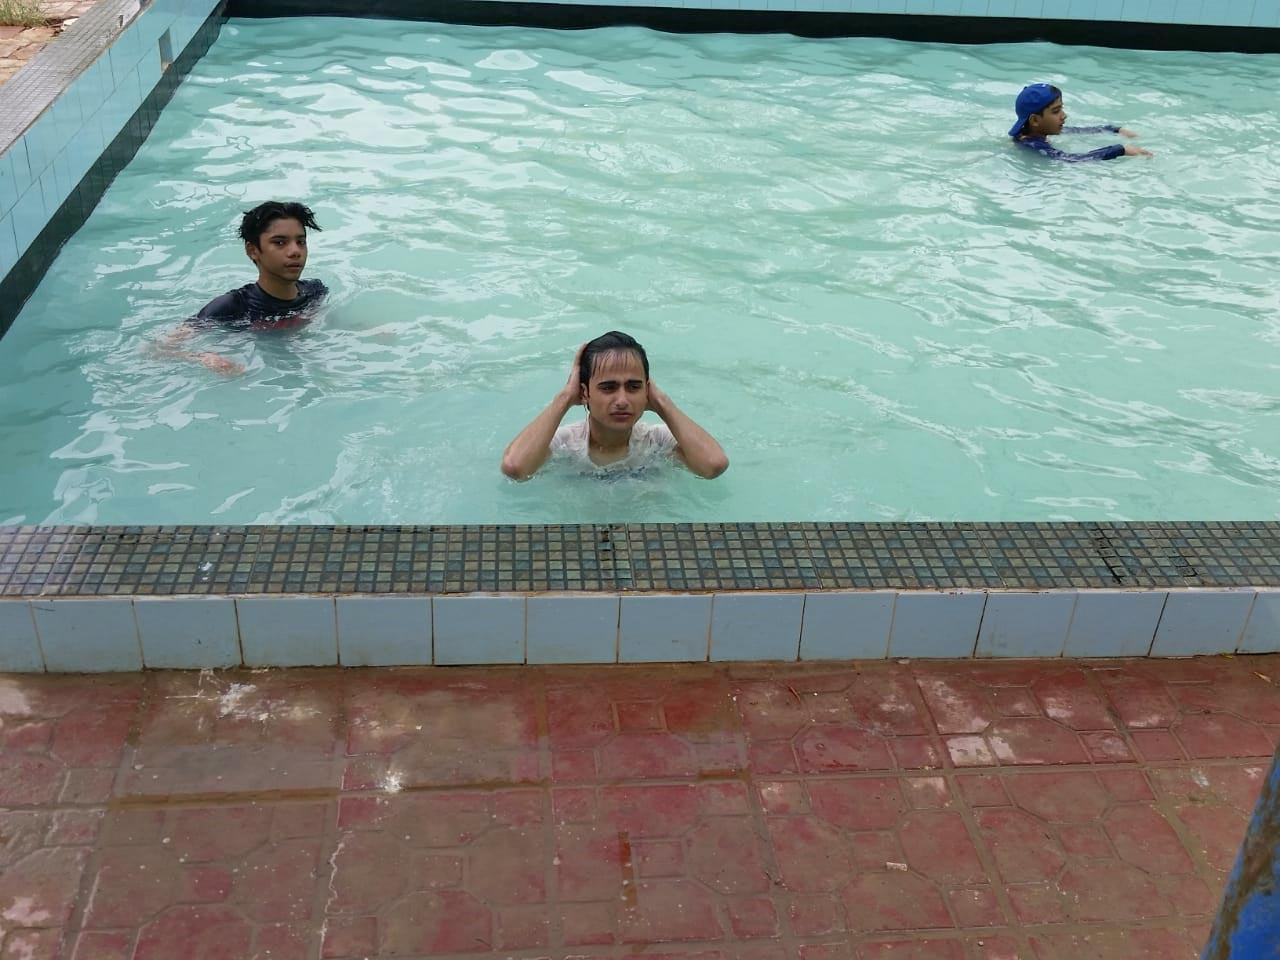 The kids are enjoying inside the swimming pool